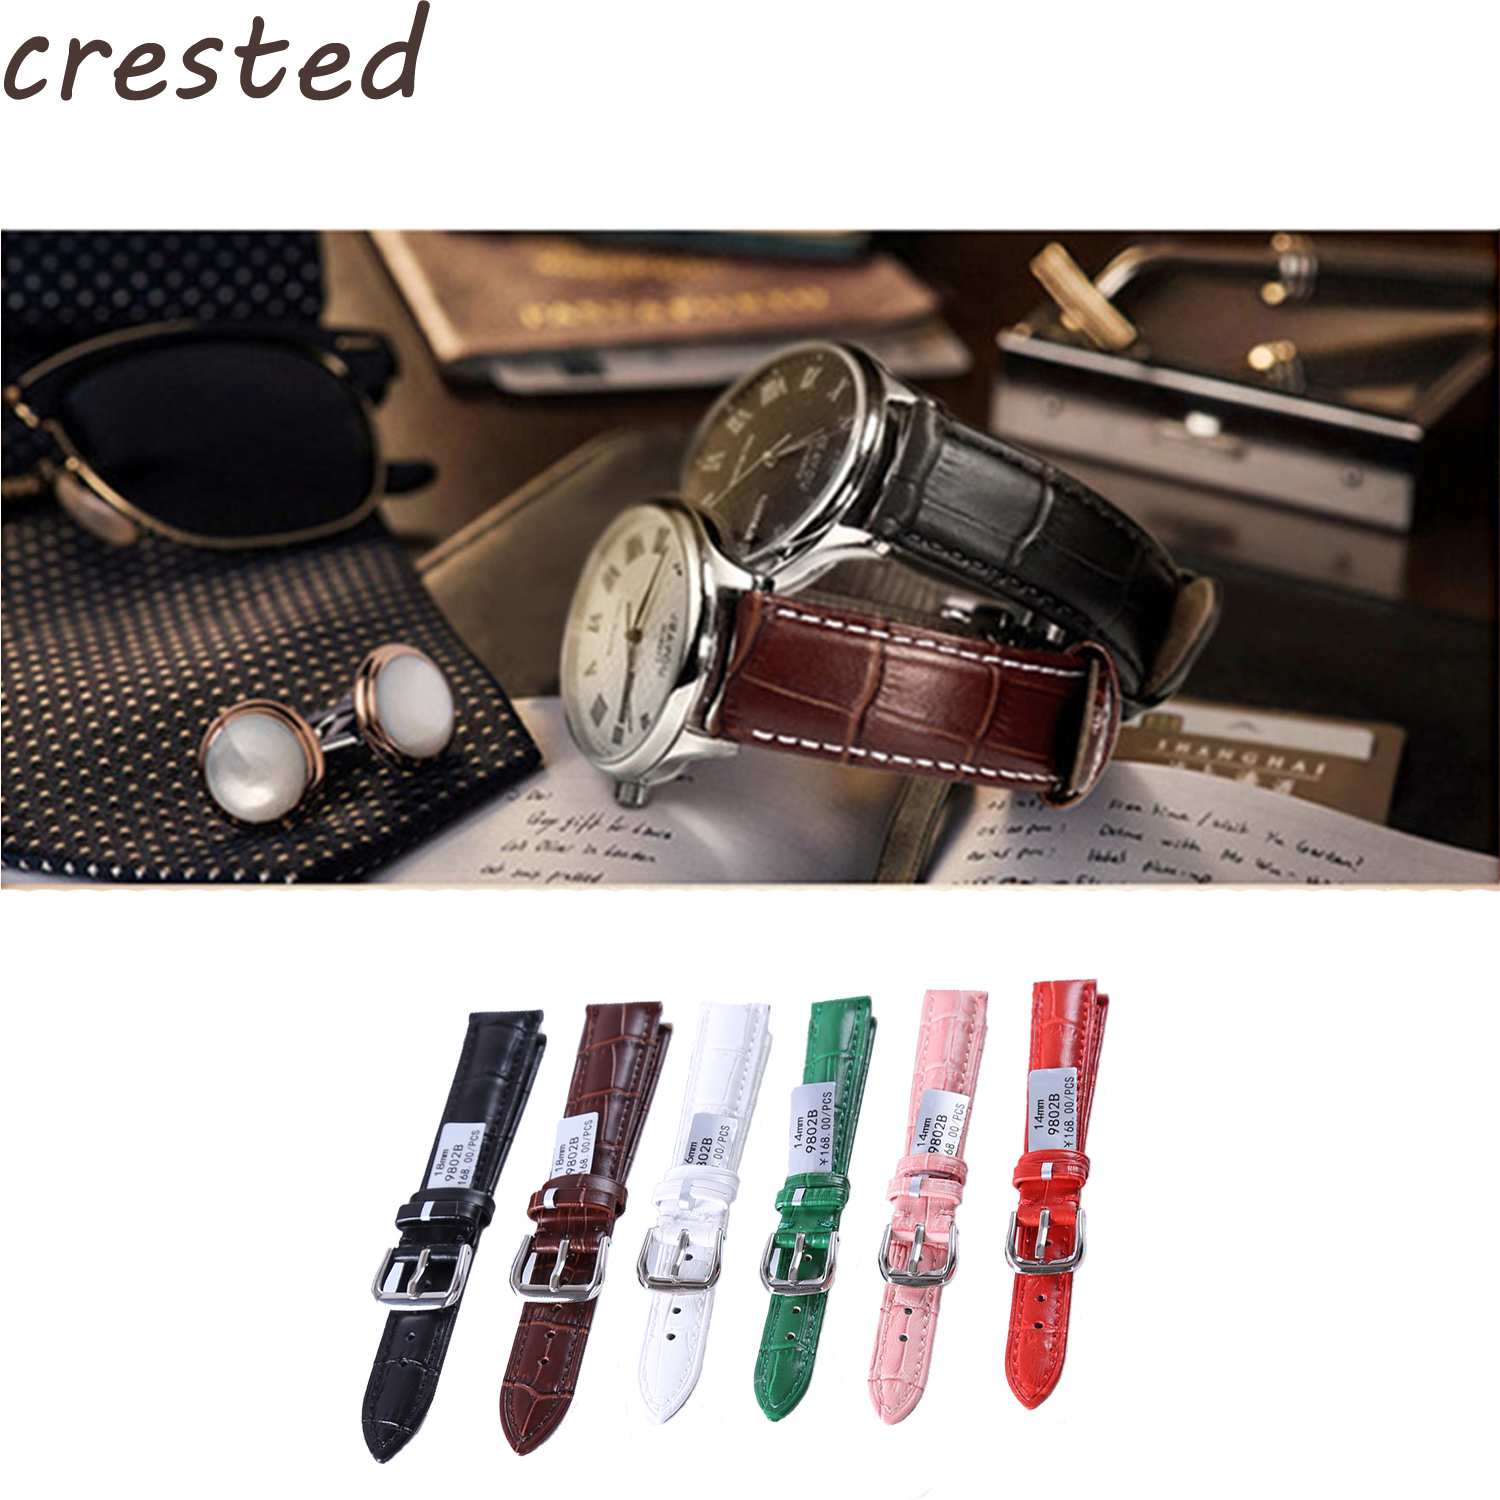 CRESTED genuine leather strap Seven colors watch bracelet belt new watch strap band 18mm 20mm 22mm watch accessories wristband цена